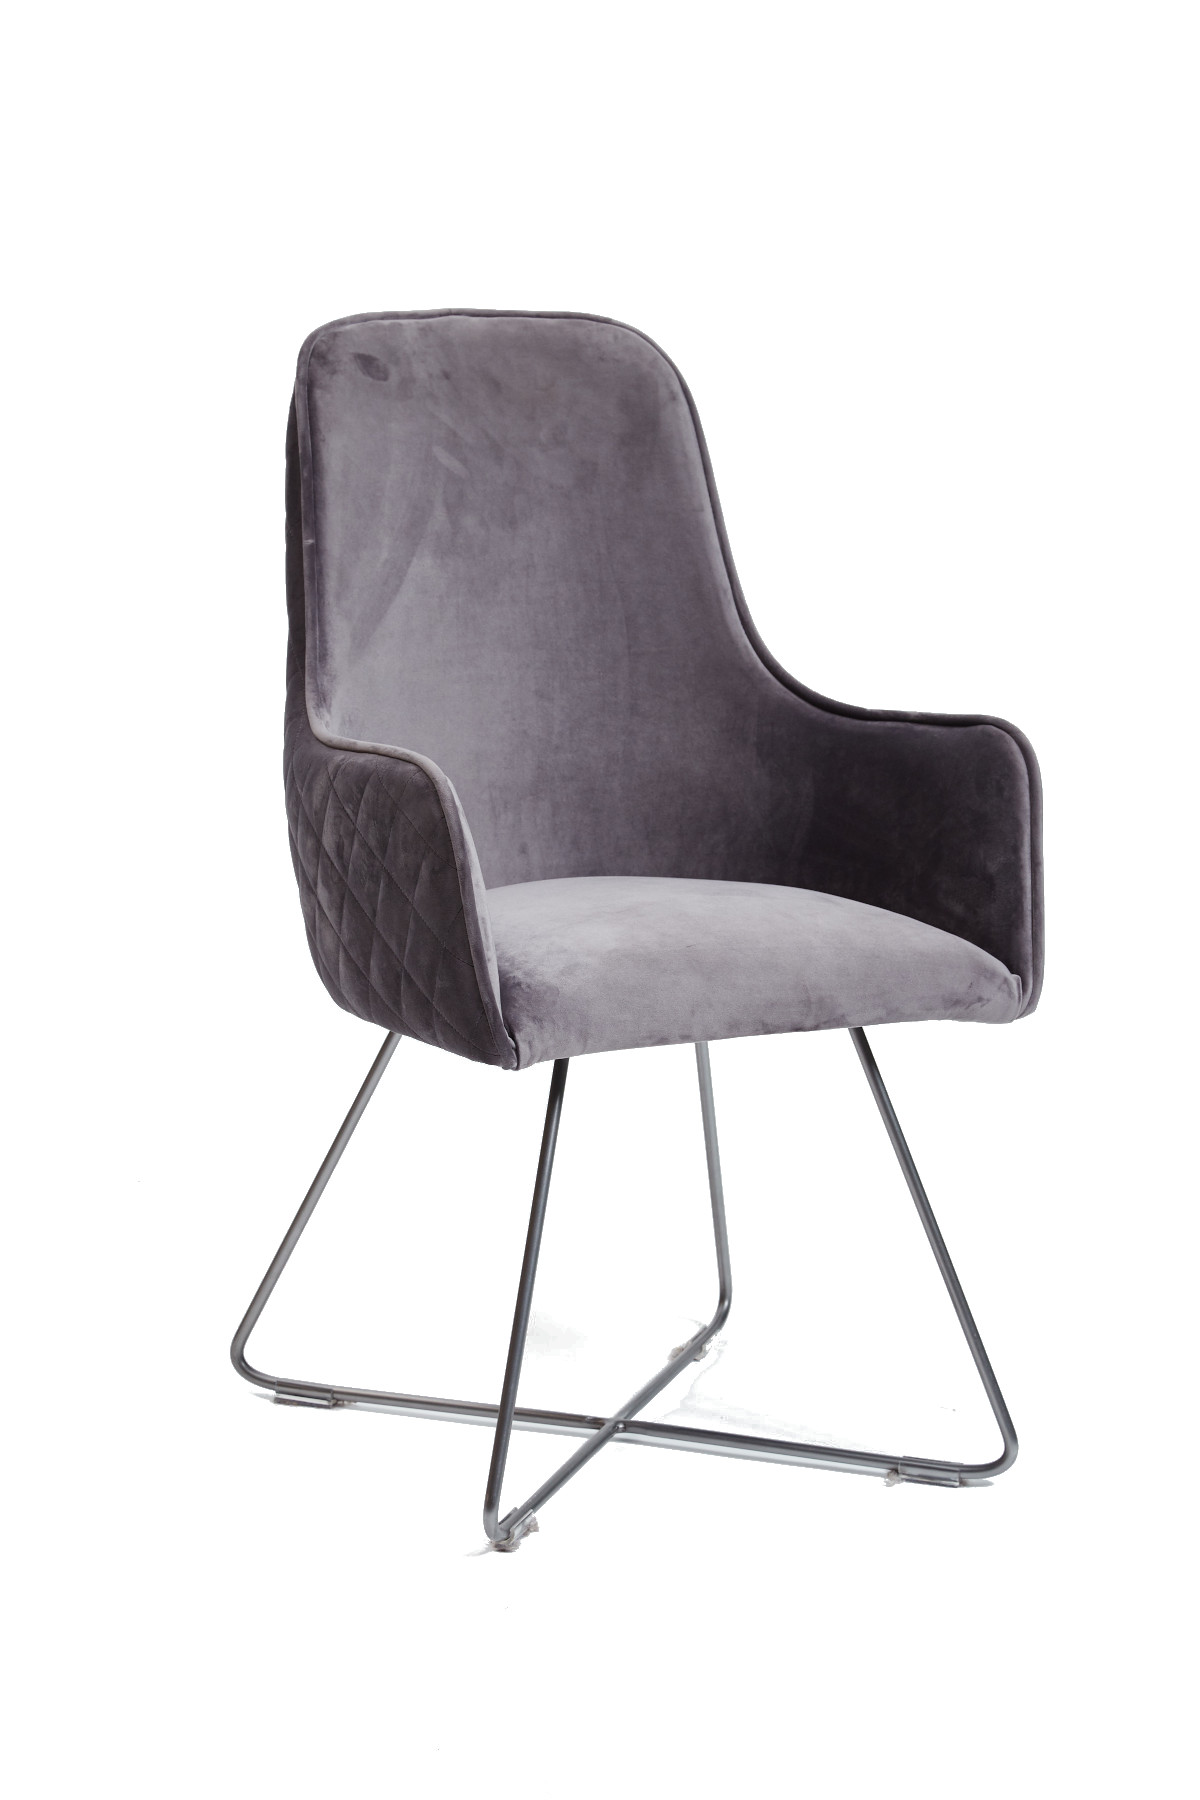 Utah Dining Chair - Plush Steel